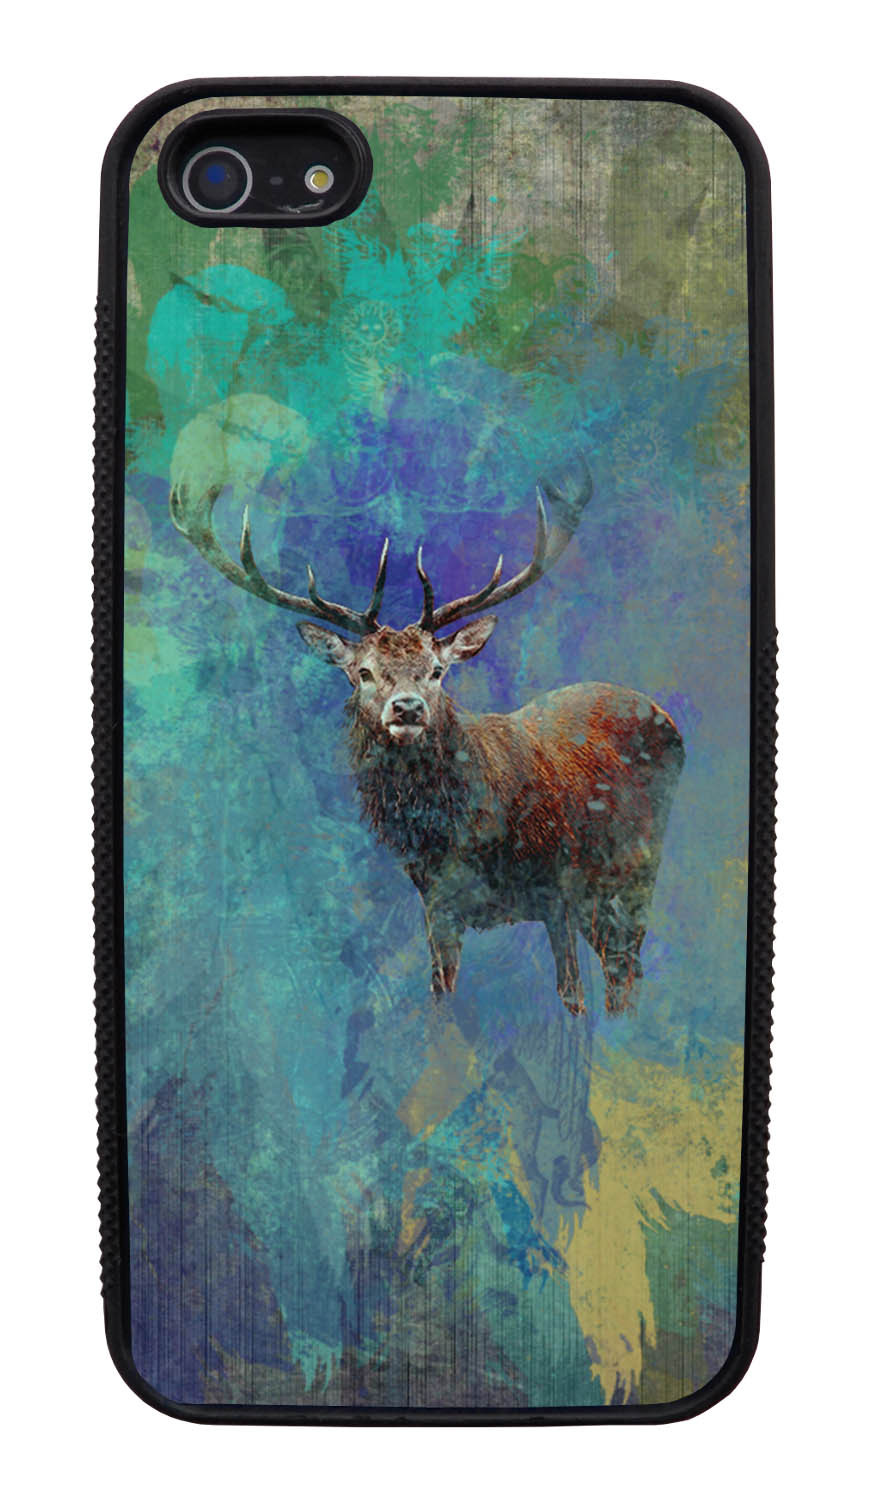 Apple iPhone 5 / 5S Deer Case - Deer Posturing Photo on Paint Splatter Overlay - Picture - Black Slim Rubber Case